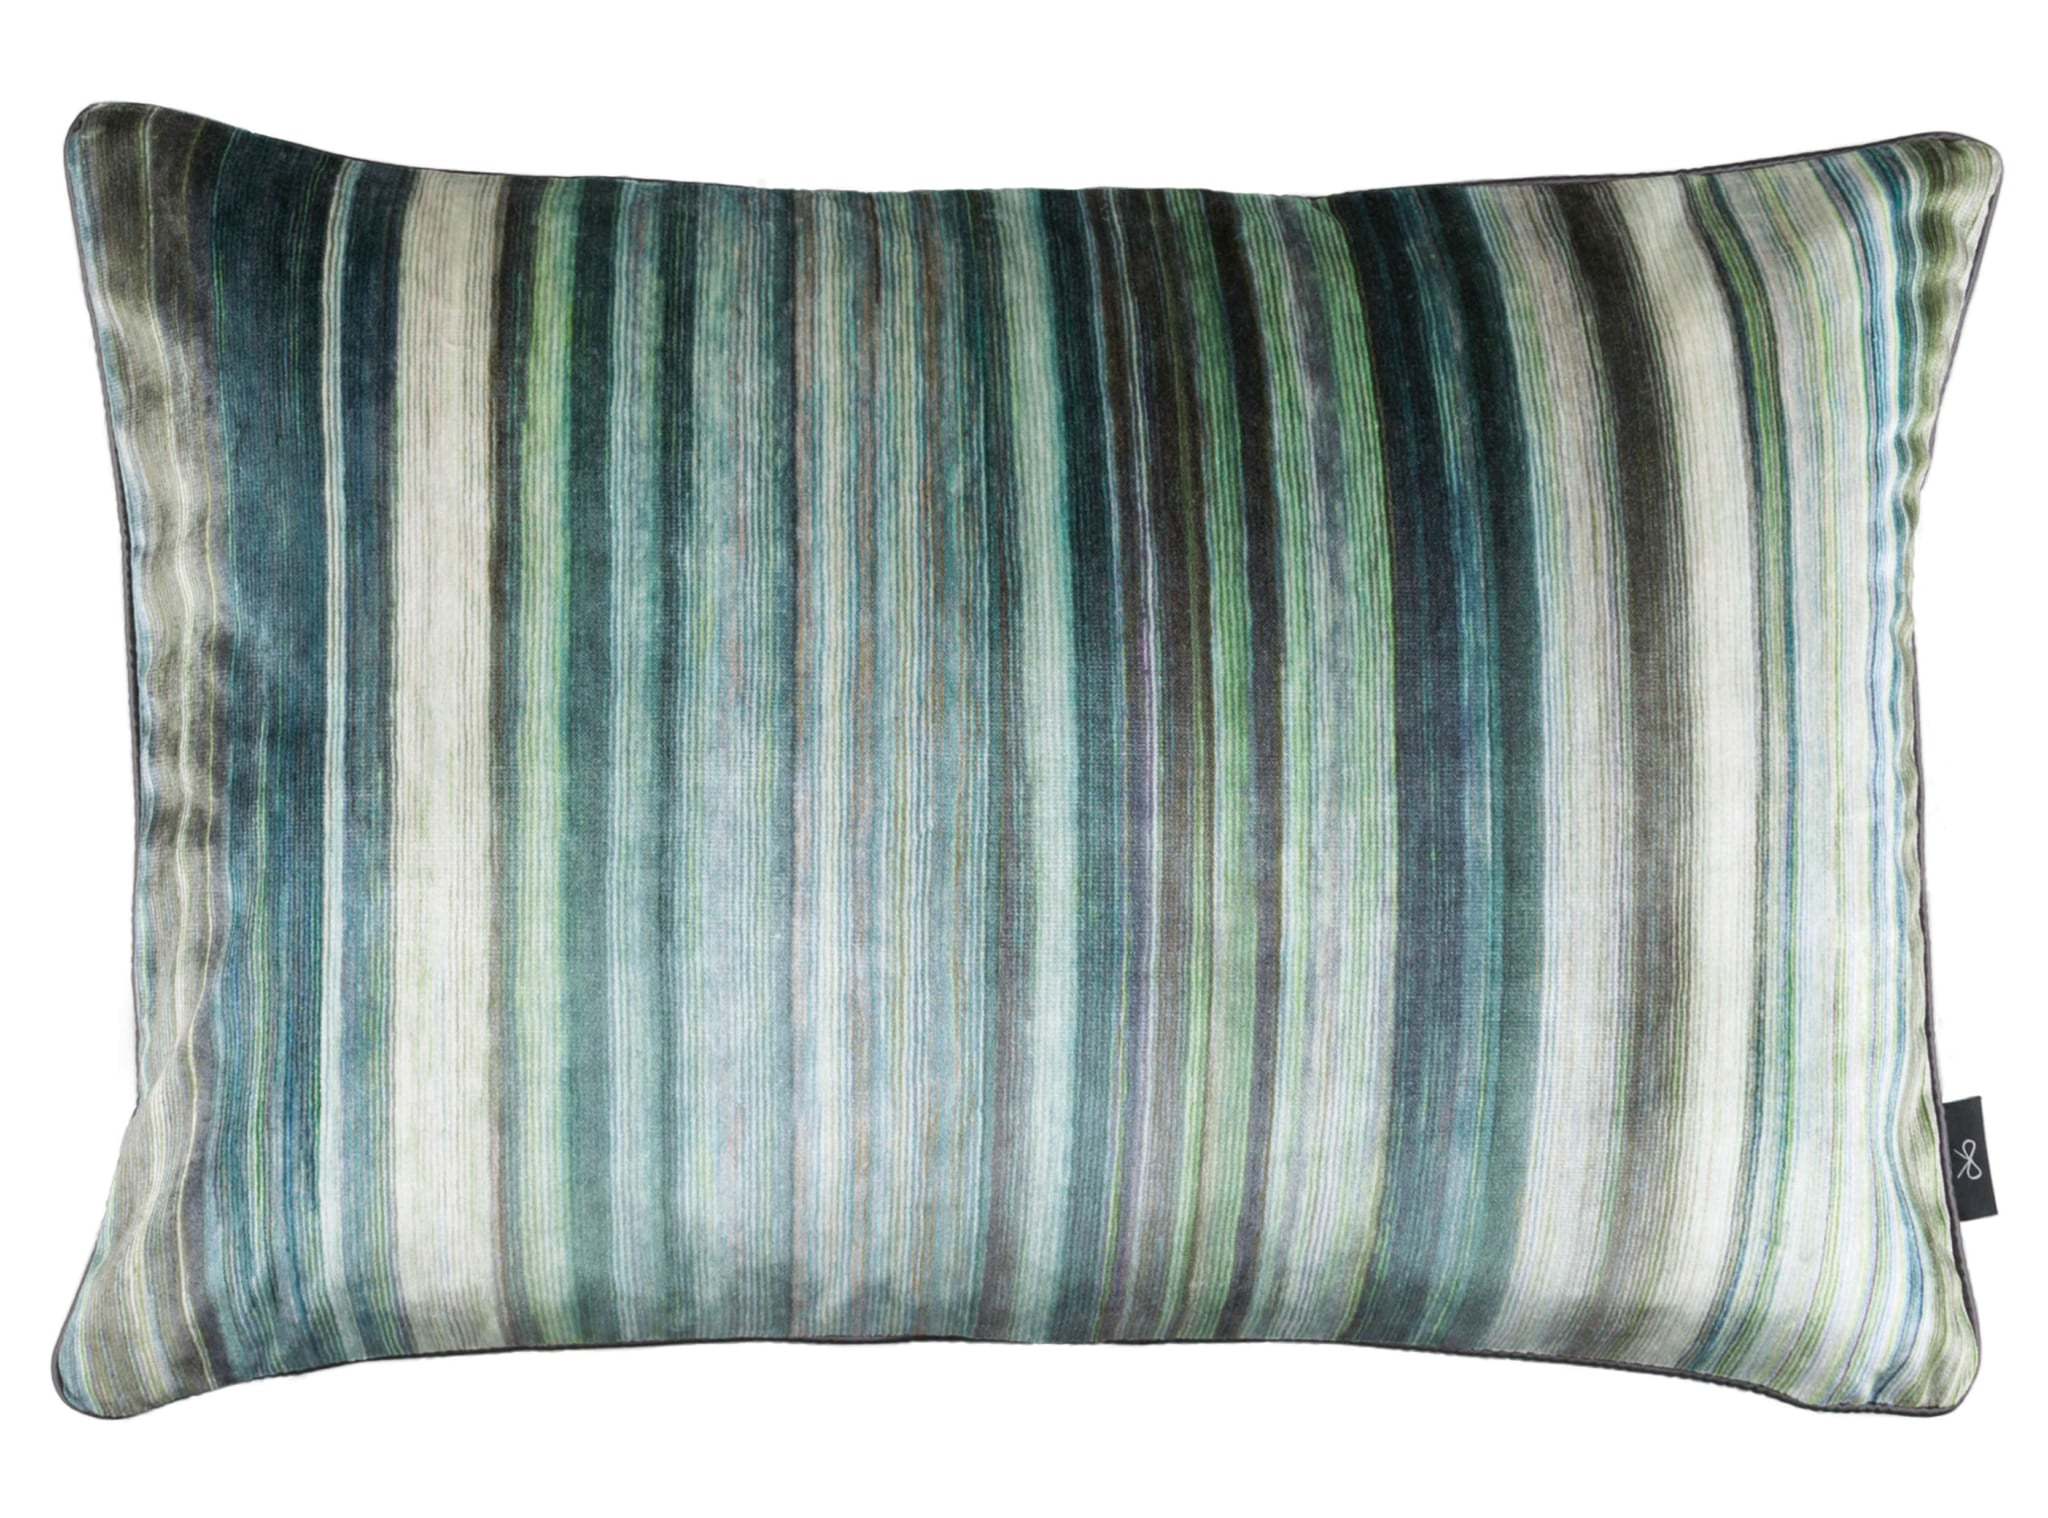 【海外取寄品】The Tomoko Velvet クッション Malachite by BLACK edition 60×40cm 中材付